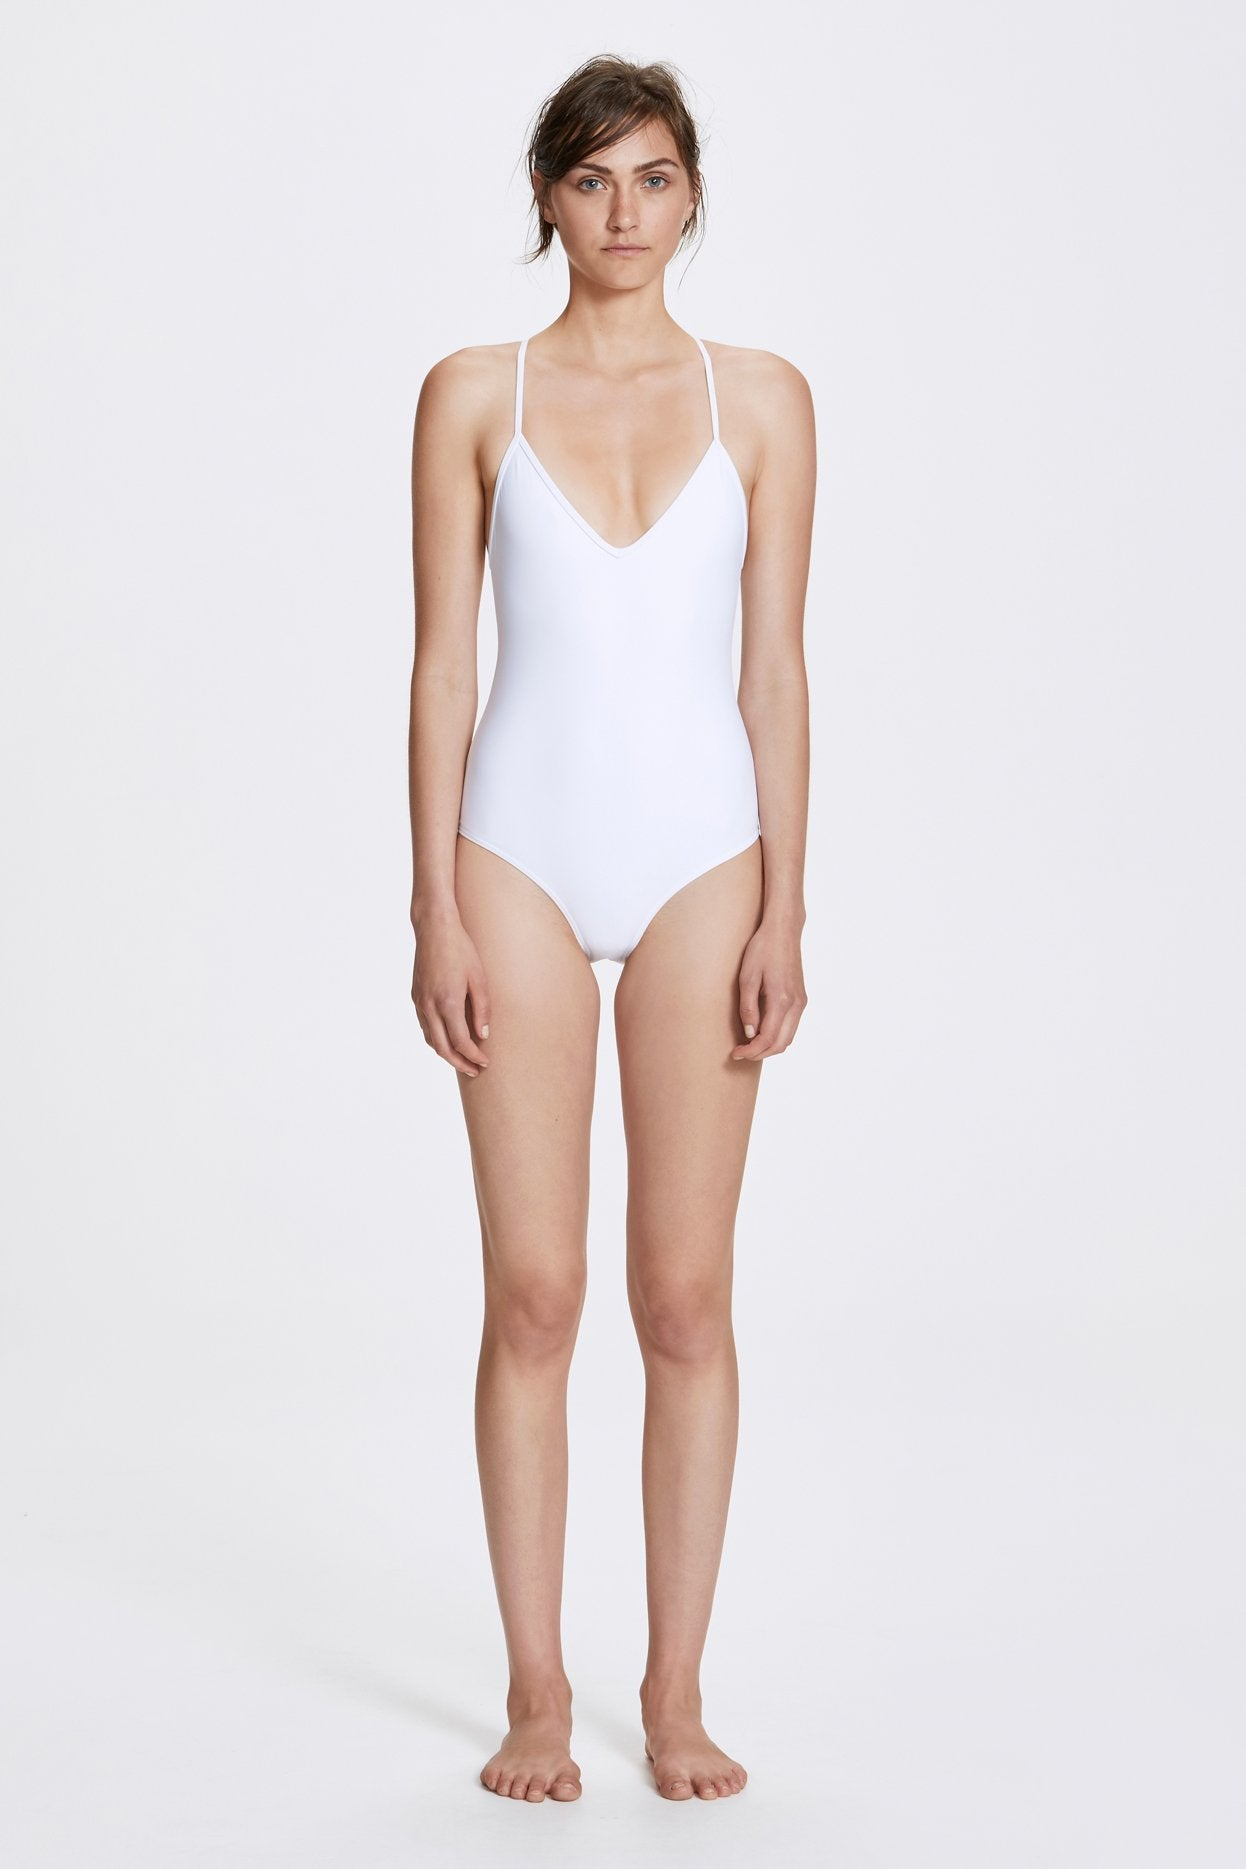 Her Line Dylan Swimwear One Piece Milk White Front